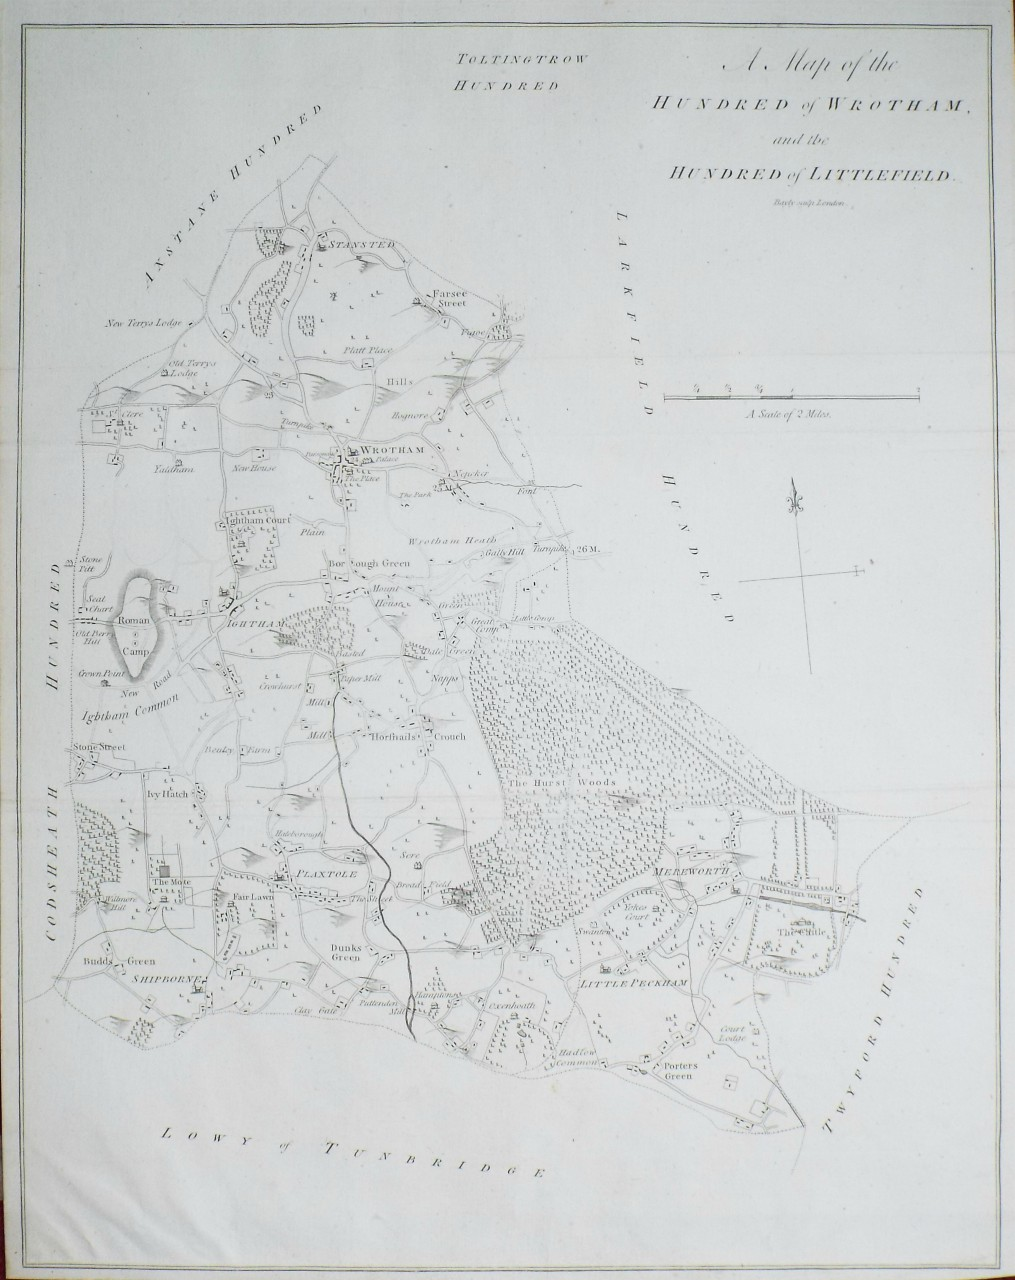 Map of Wrothan and Littlefield